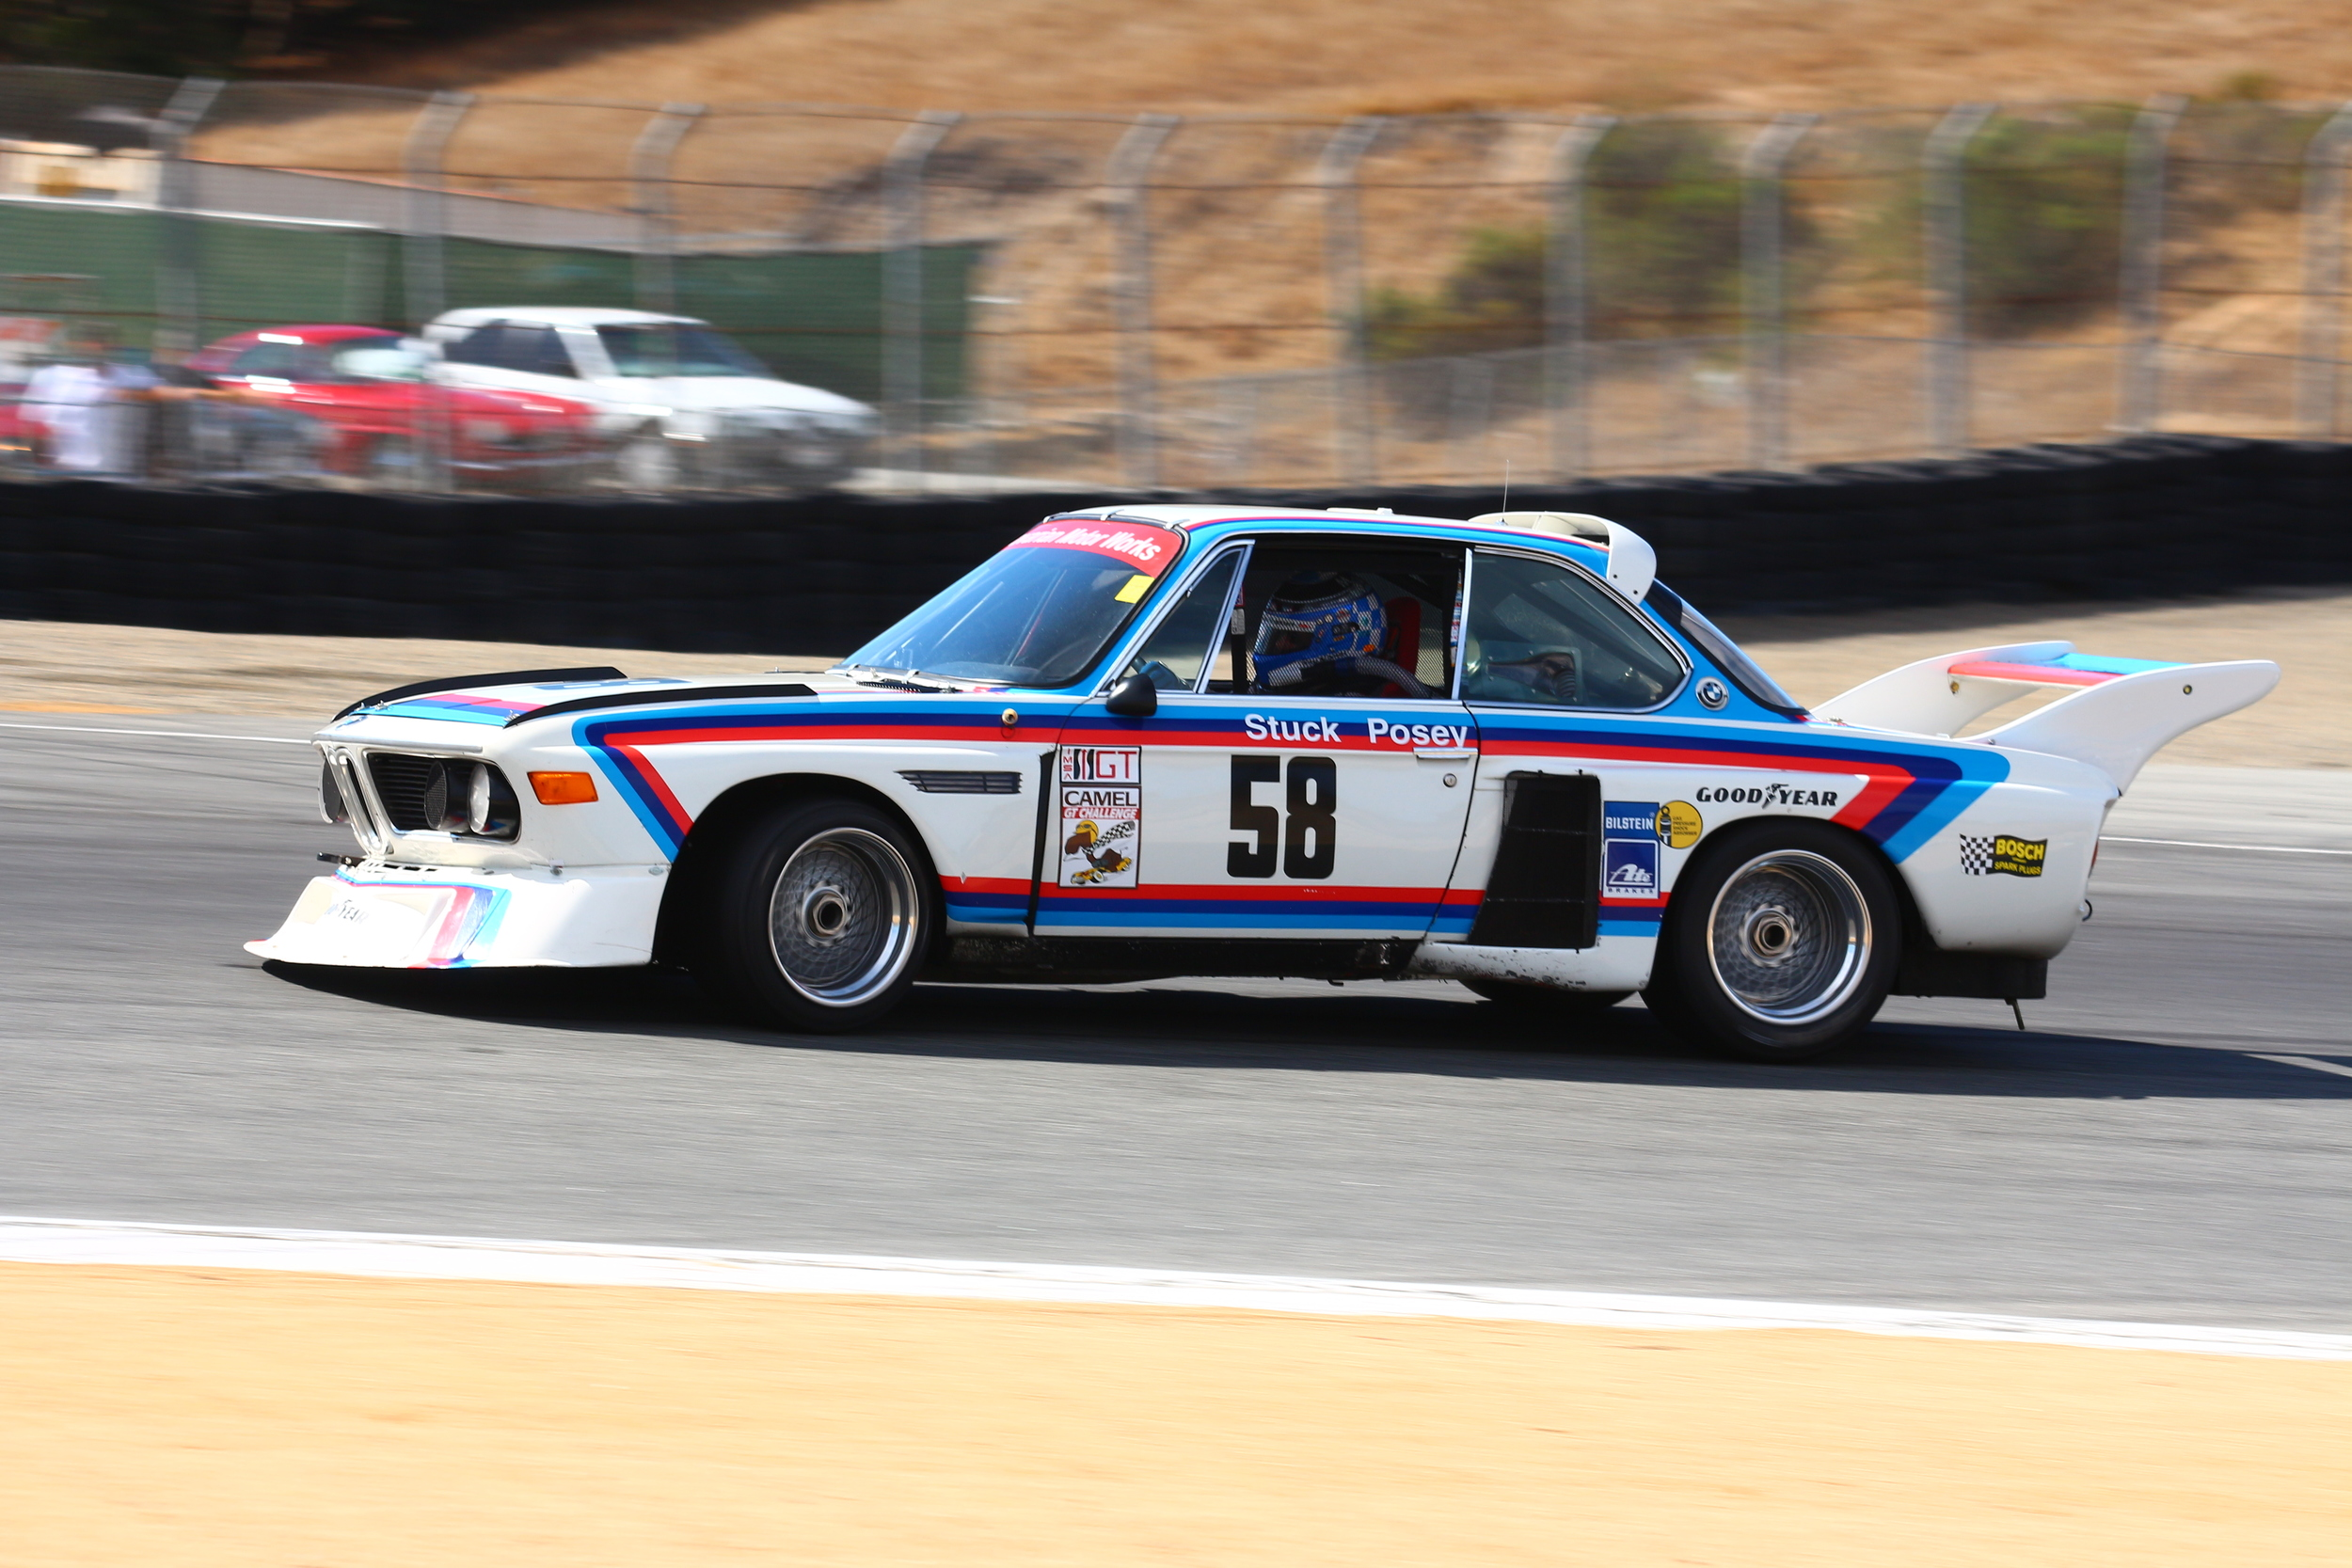 Just one of many BMWs that will be at Mazda Raceway Laguna Seca in August.